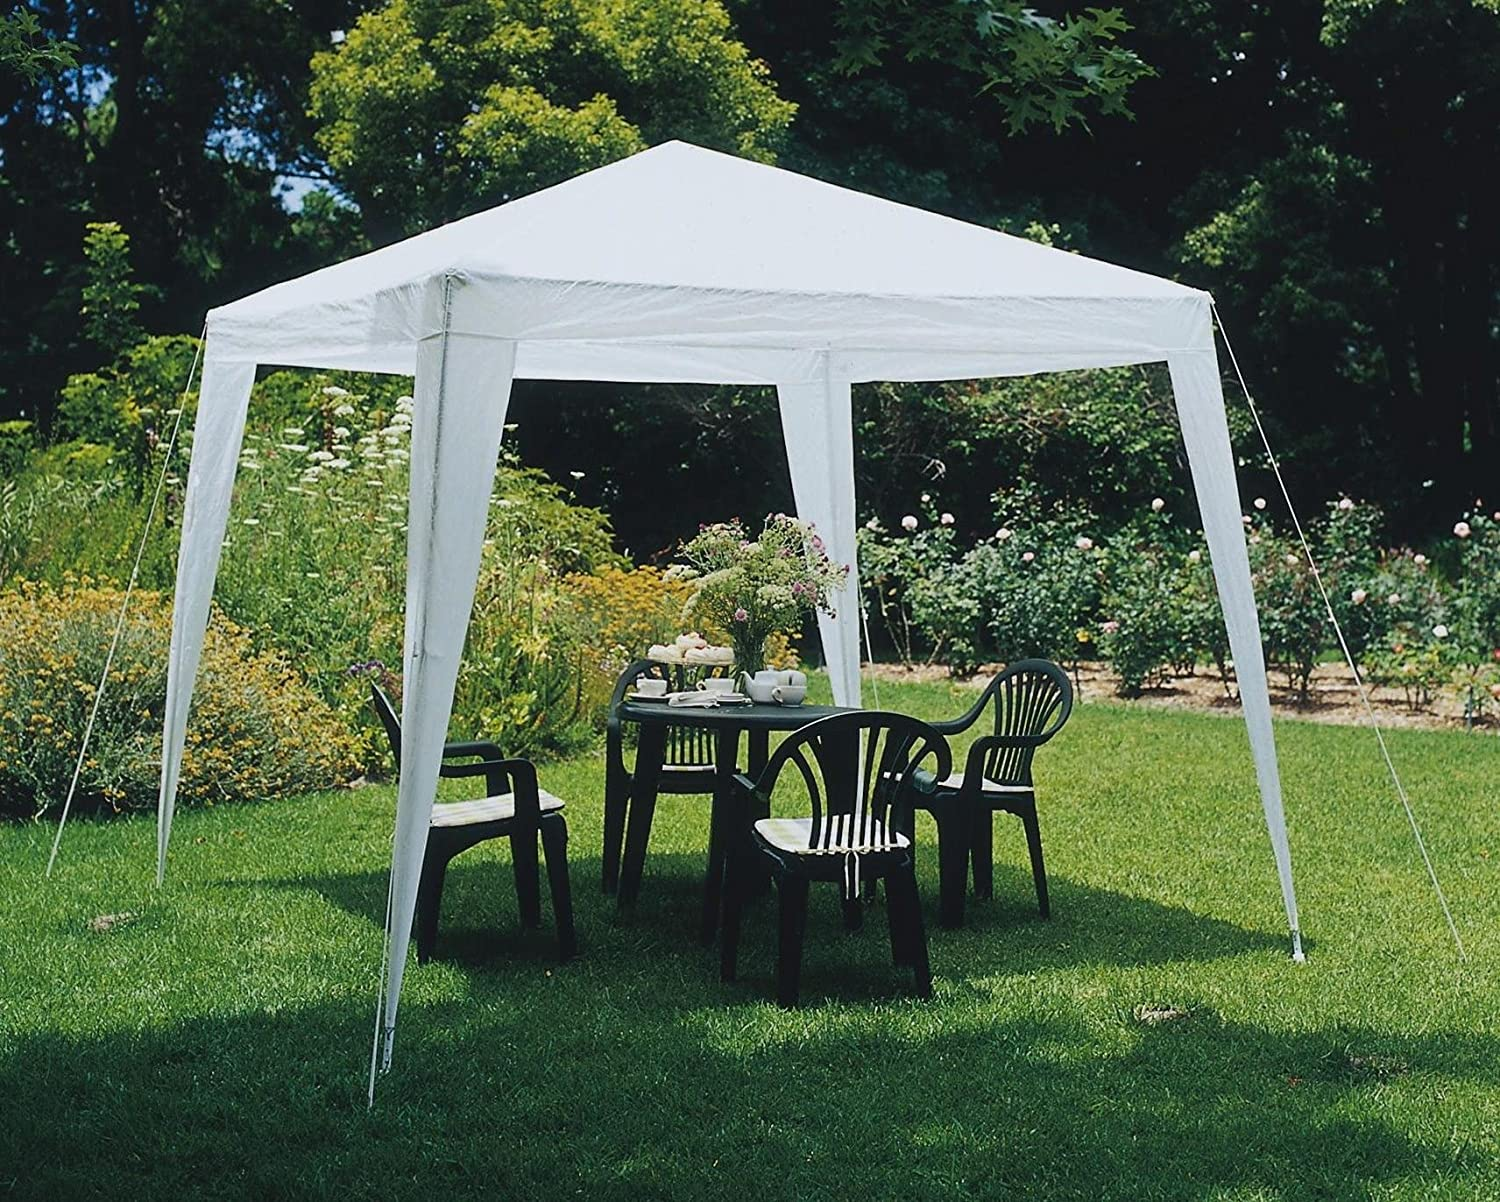 White Slimbridge Wakehurst 3 x 3 Metres Fully Waterproof Gazebo Tent Marquee Awning Canopy without Side Panels with Powder Coated Steel Frame for Outdoor Wedding Garden Party